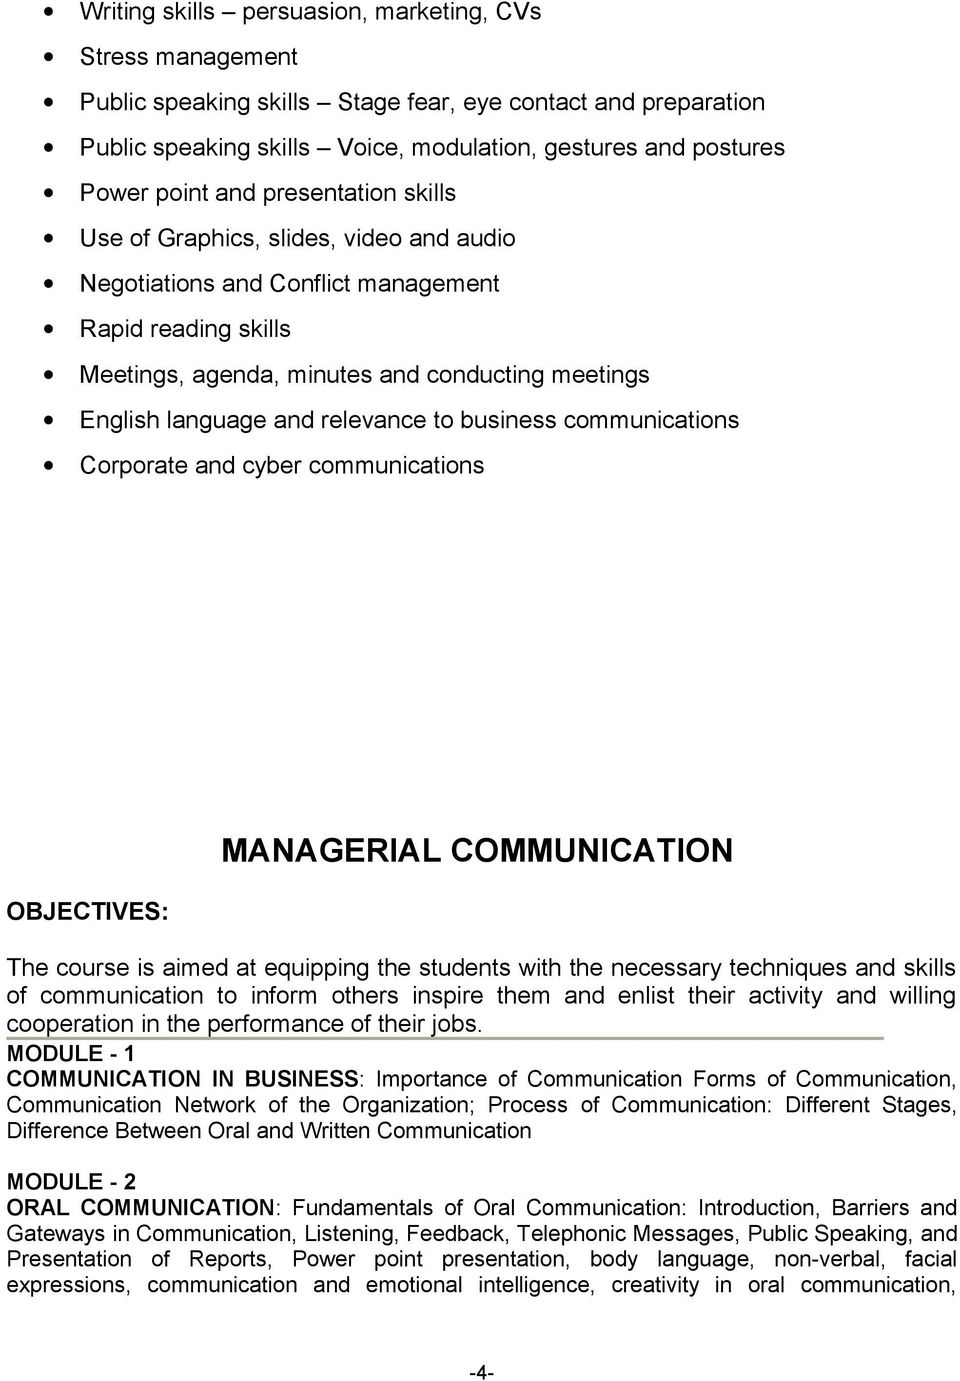 relevance to business communications Corporate and cyber communications OBJECTIVES: MANAGERIAL COMMUNICATION The course is aimed at equipping the students with the necessary techniques and skills of